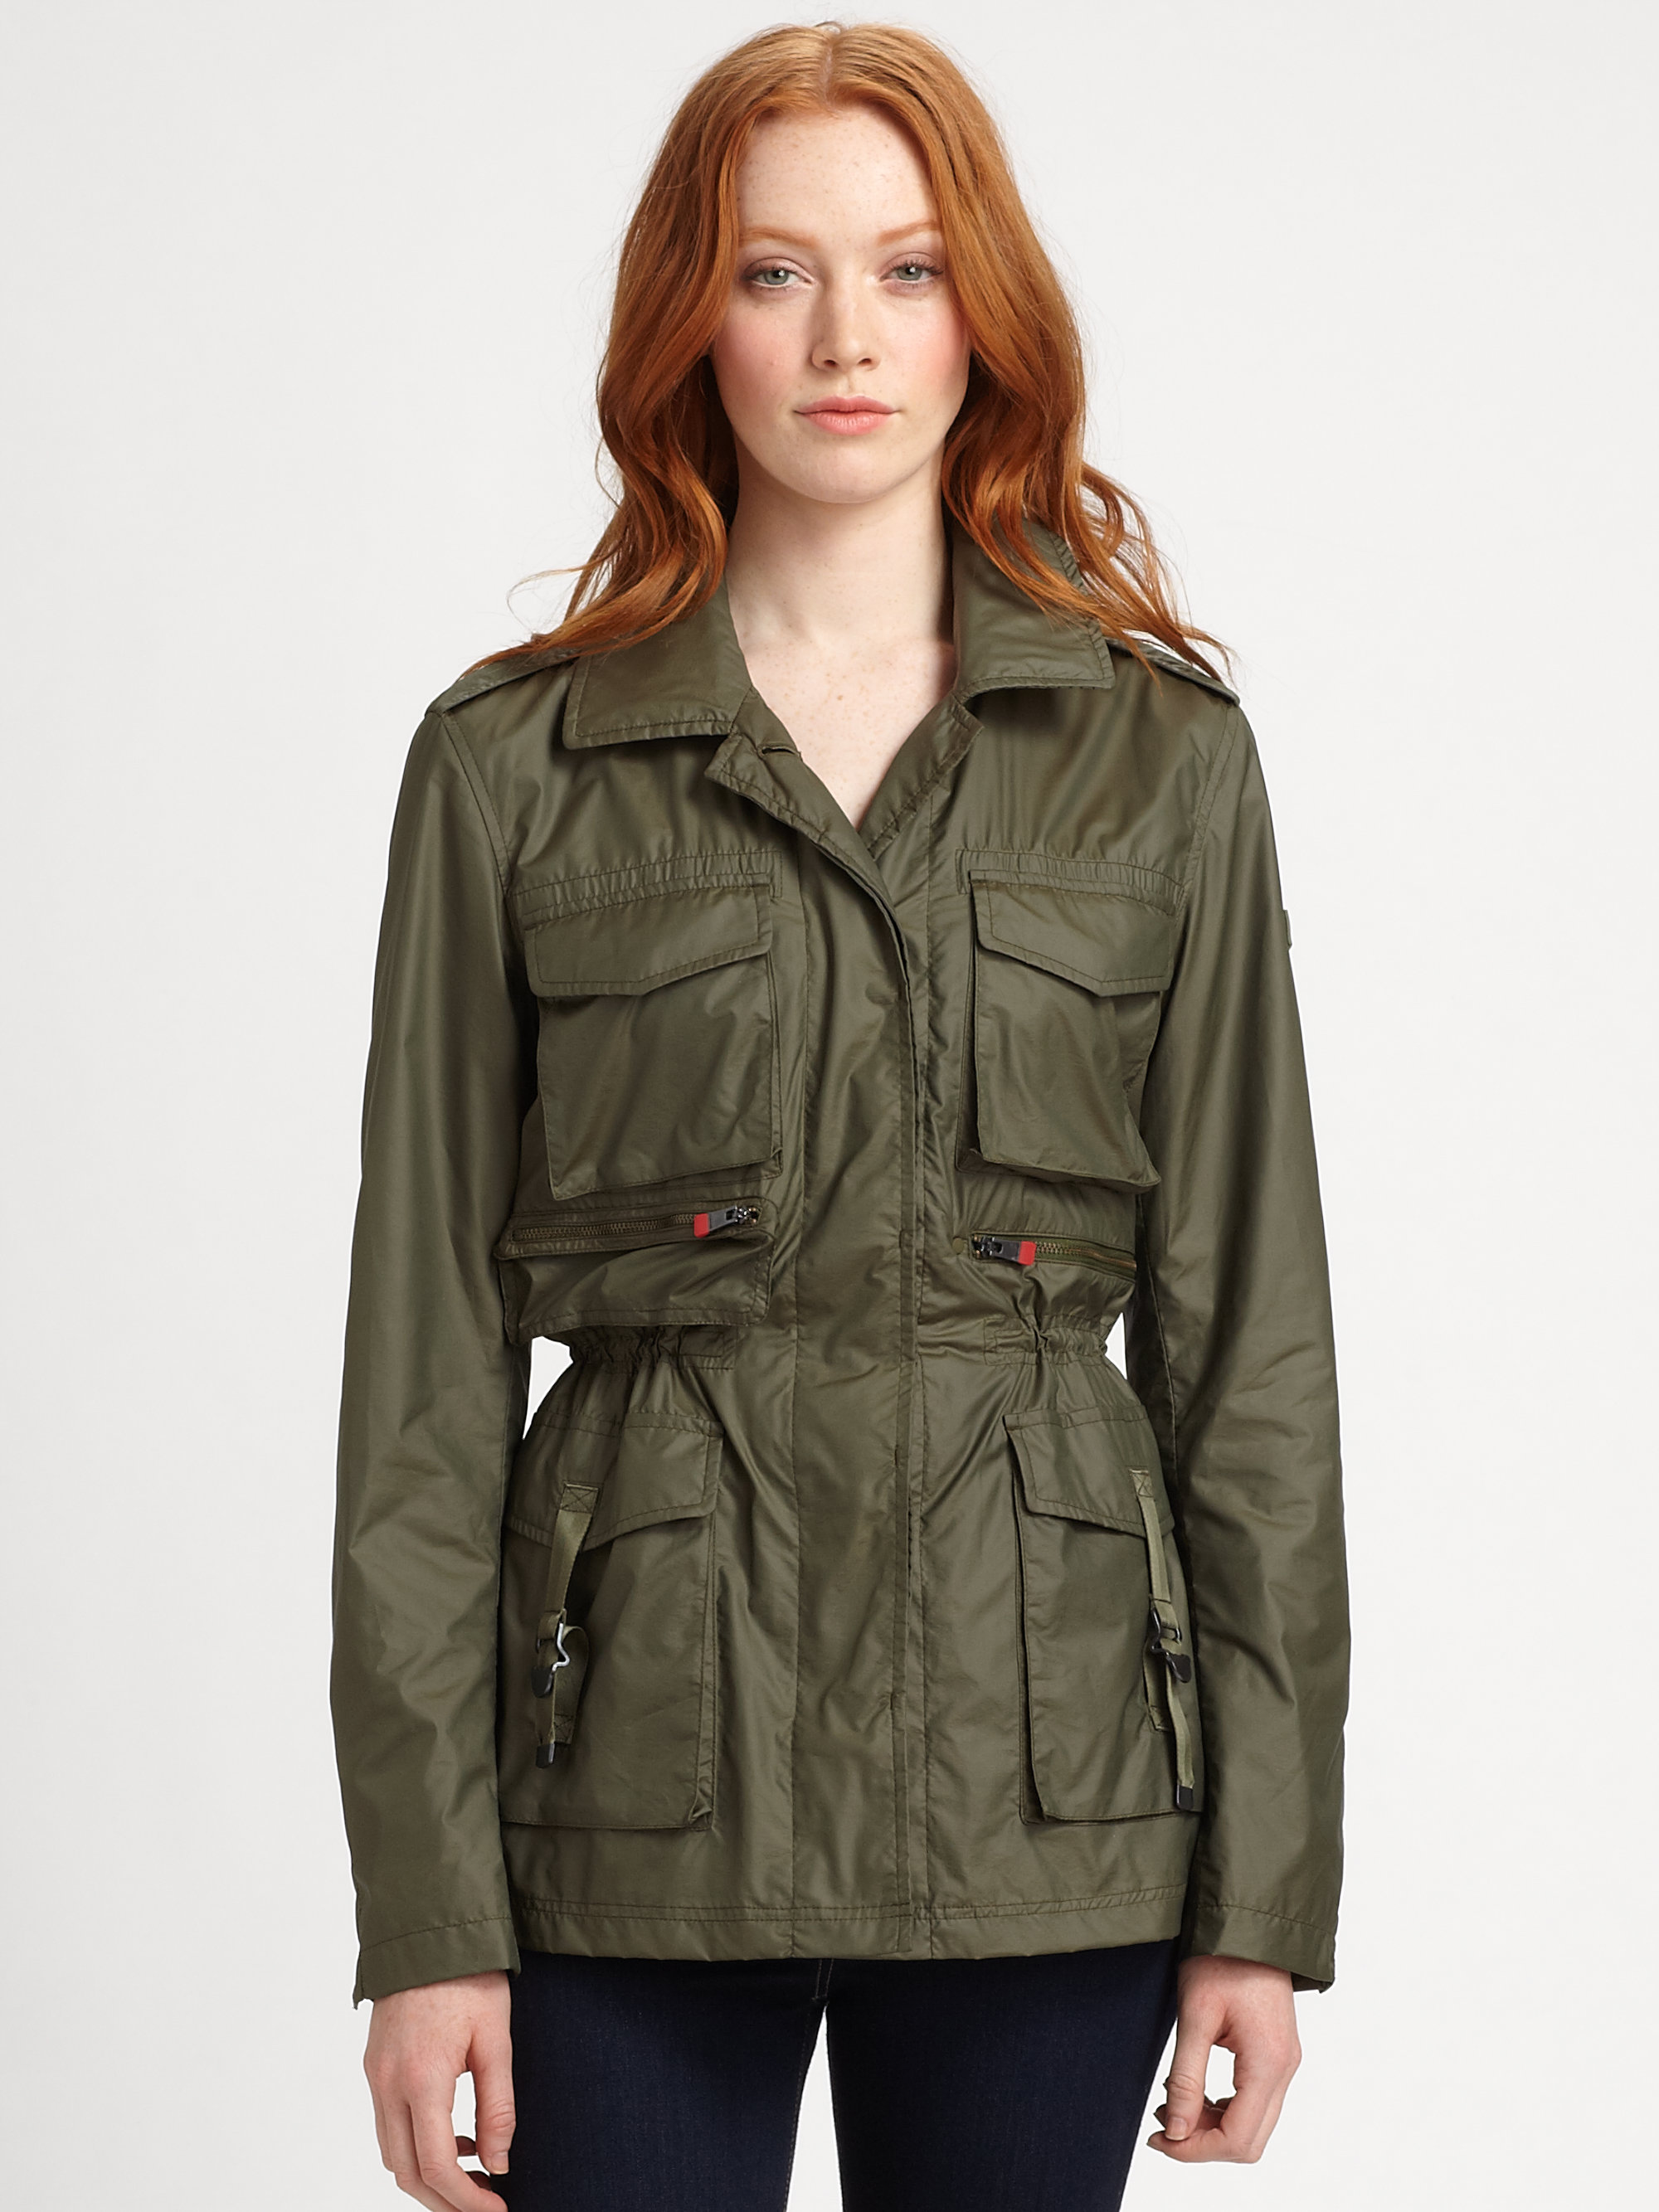 The Heritage Safari Jacket An updated design borrows the best of vintage styling in this women's linen safari jacket.